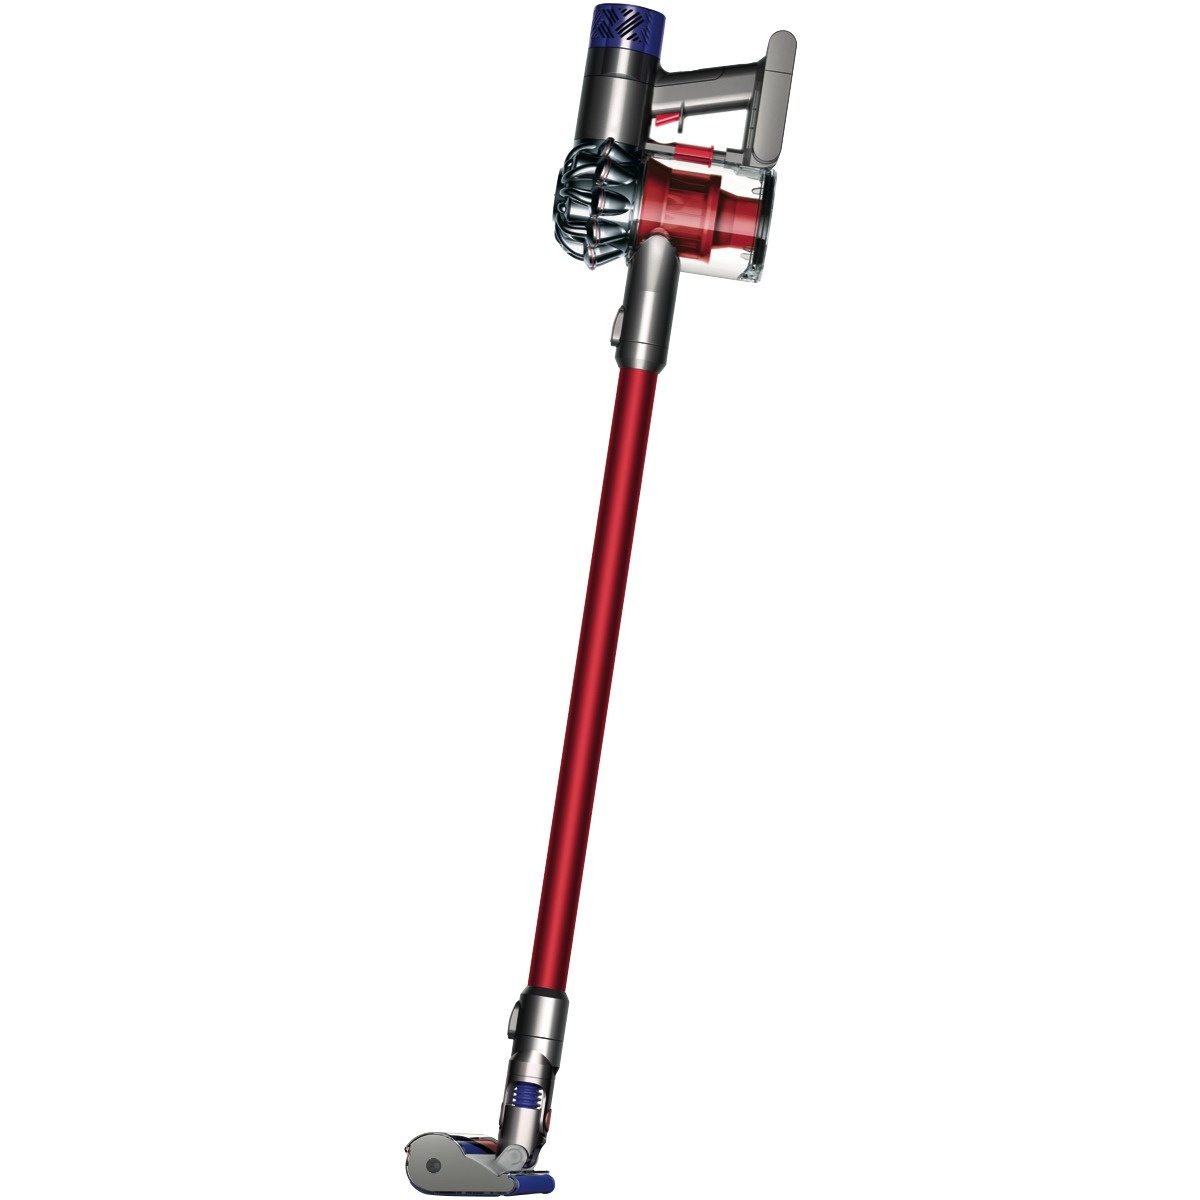 buy dyson v6 fluffy cordless vacuum cleaner and limited edition red v6 fluffy 2 years local. Black Bedroom Furniture Sets. Home Design Ideas